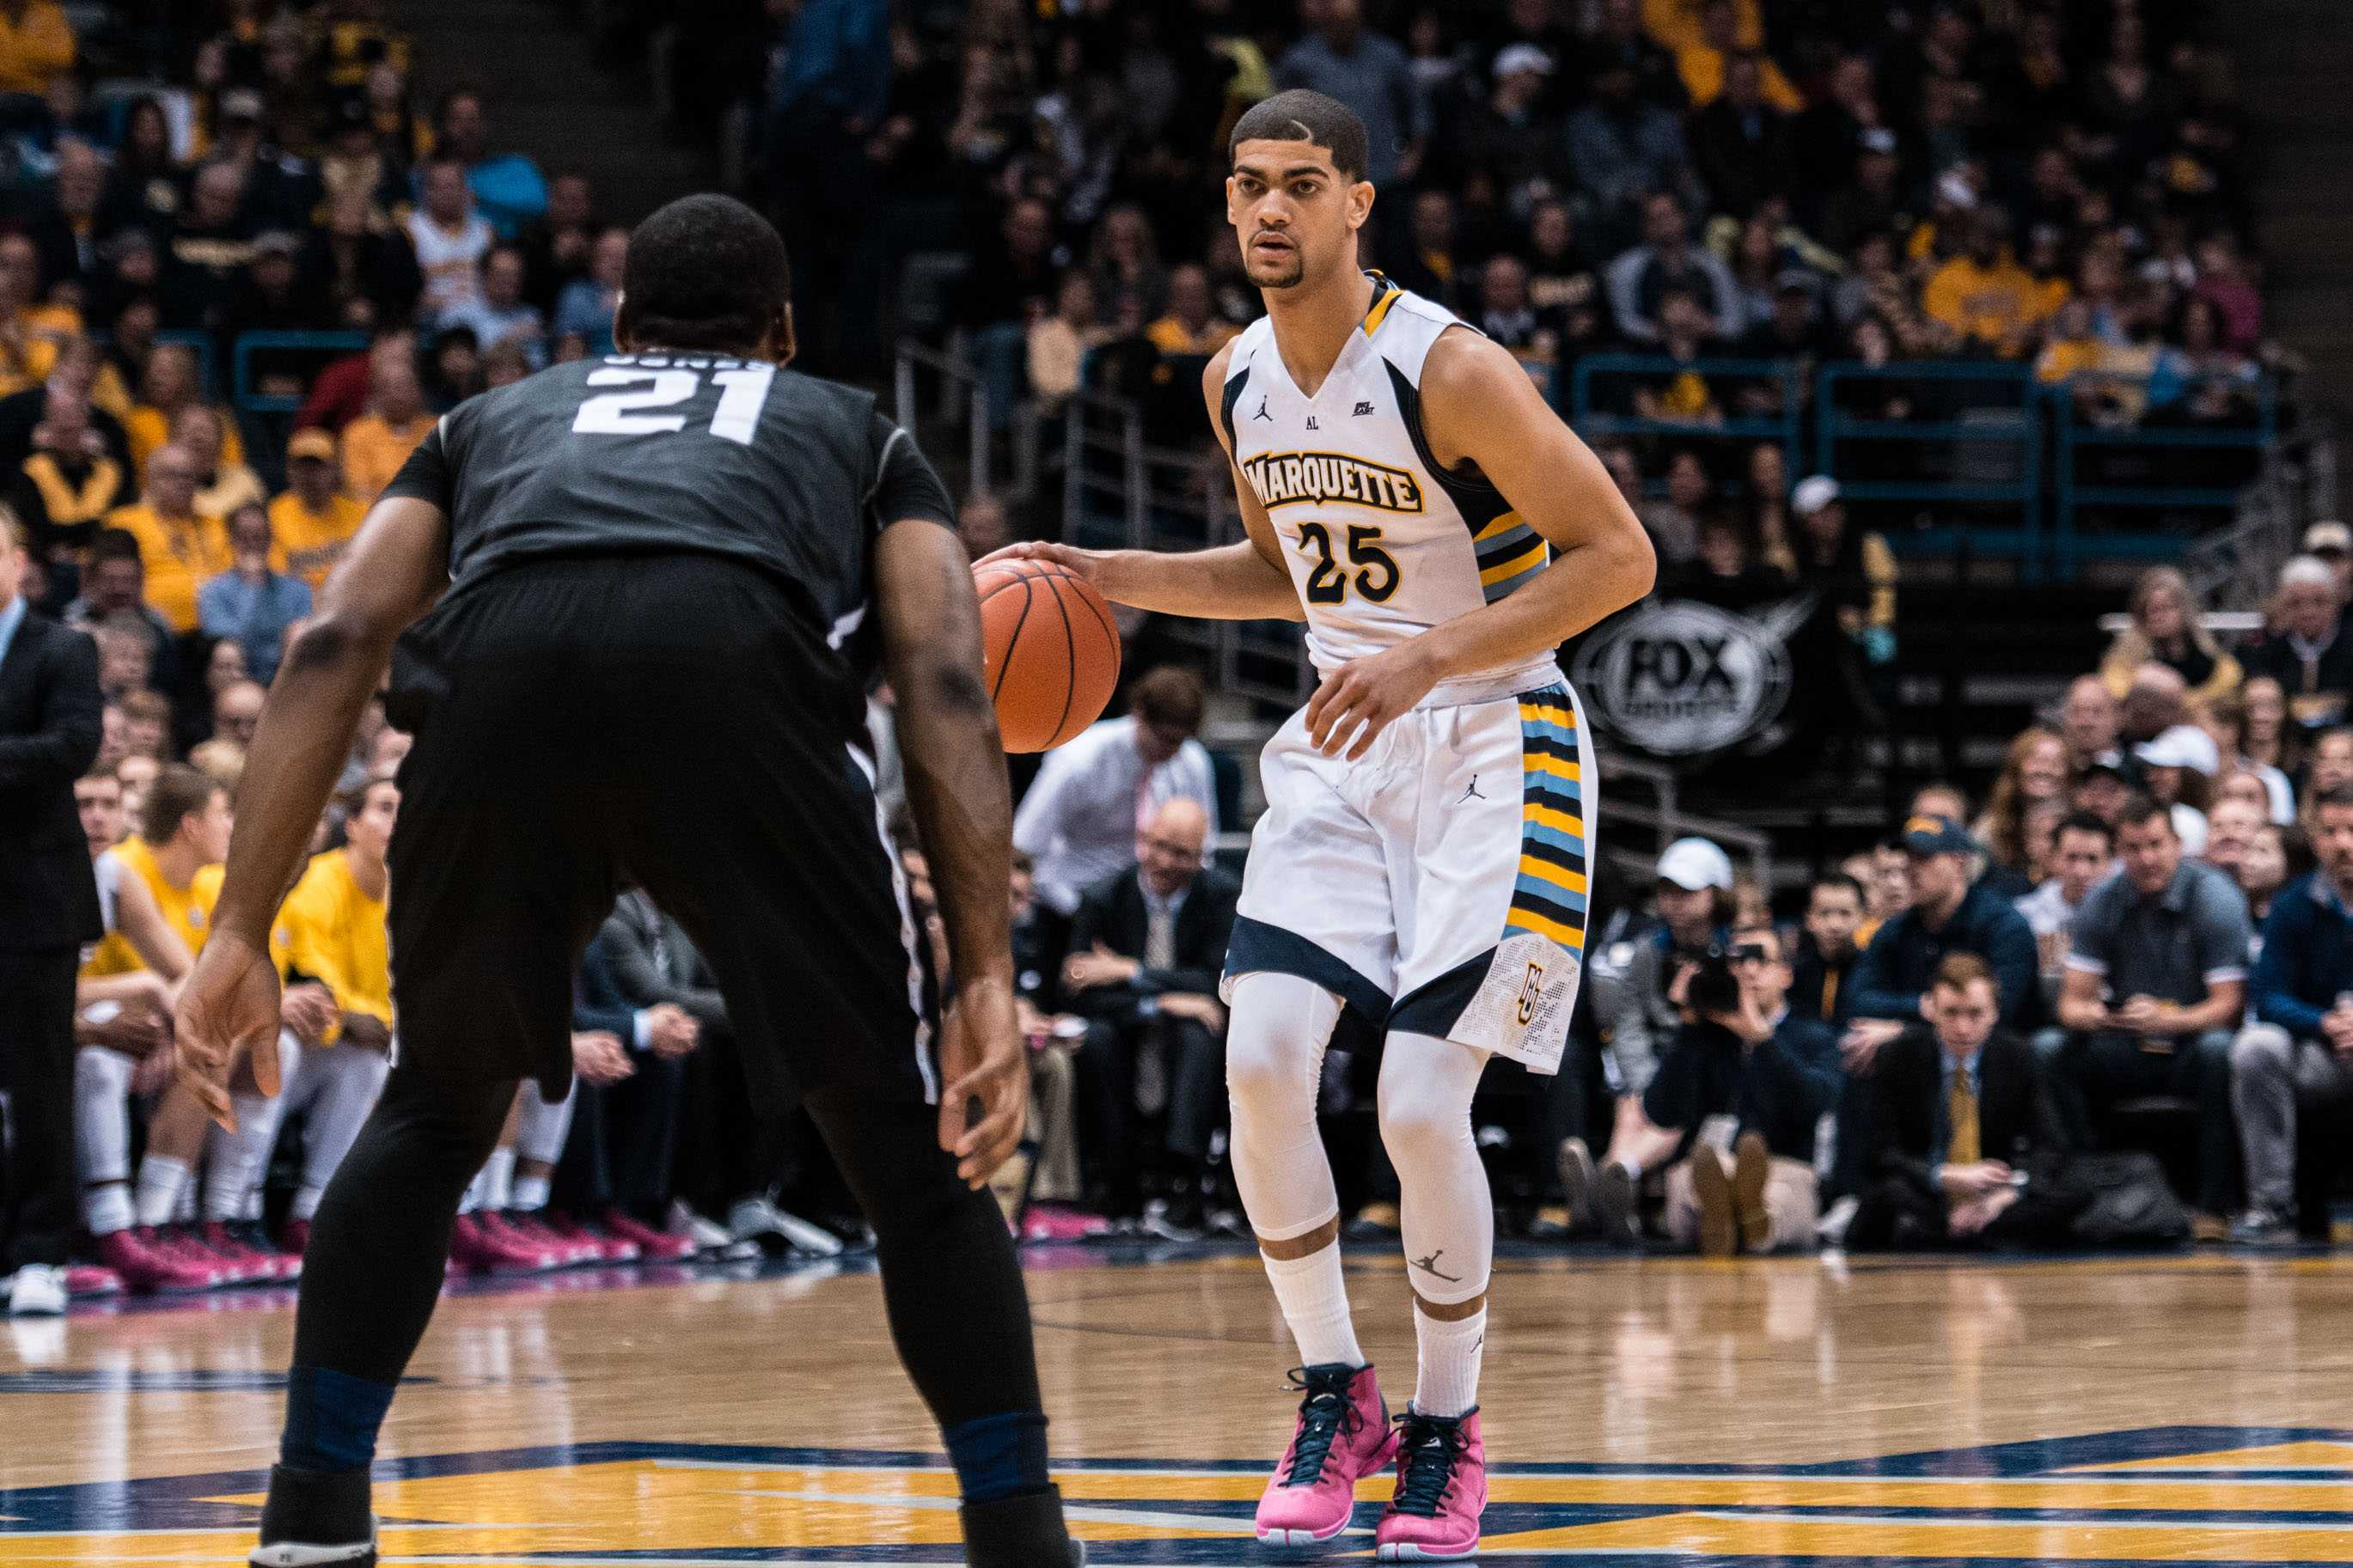 Marquette guard Haanif Cheatham will be a tough cover for the Commodores in their season opener. Photo credit: Mike Carpenter/Marquette Wire